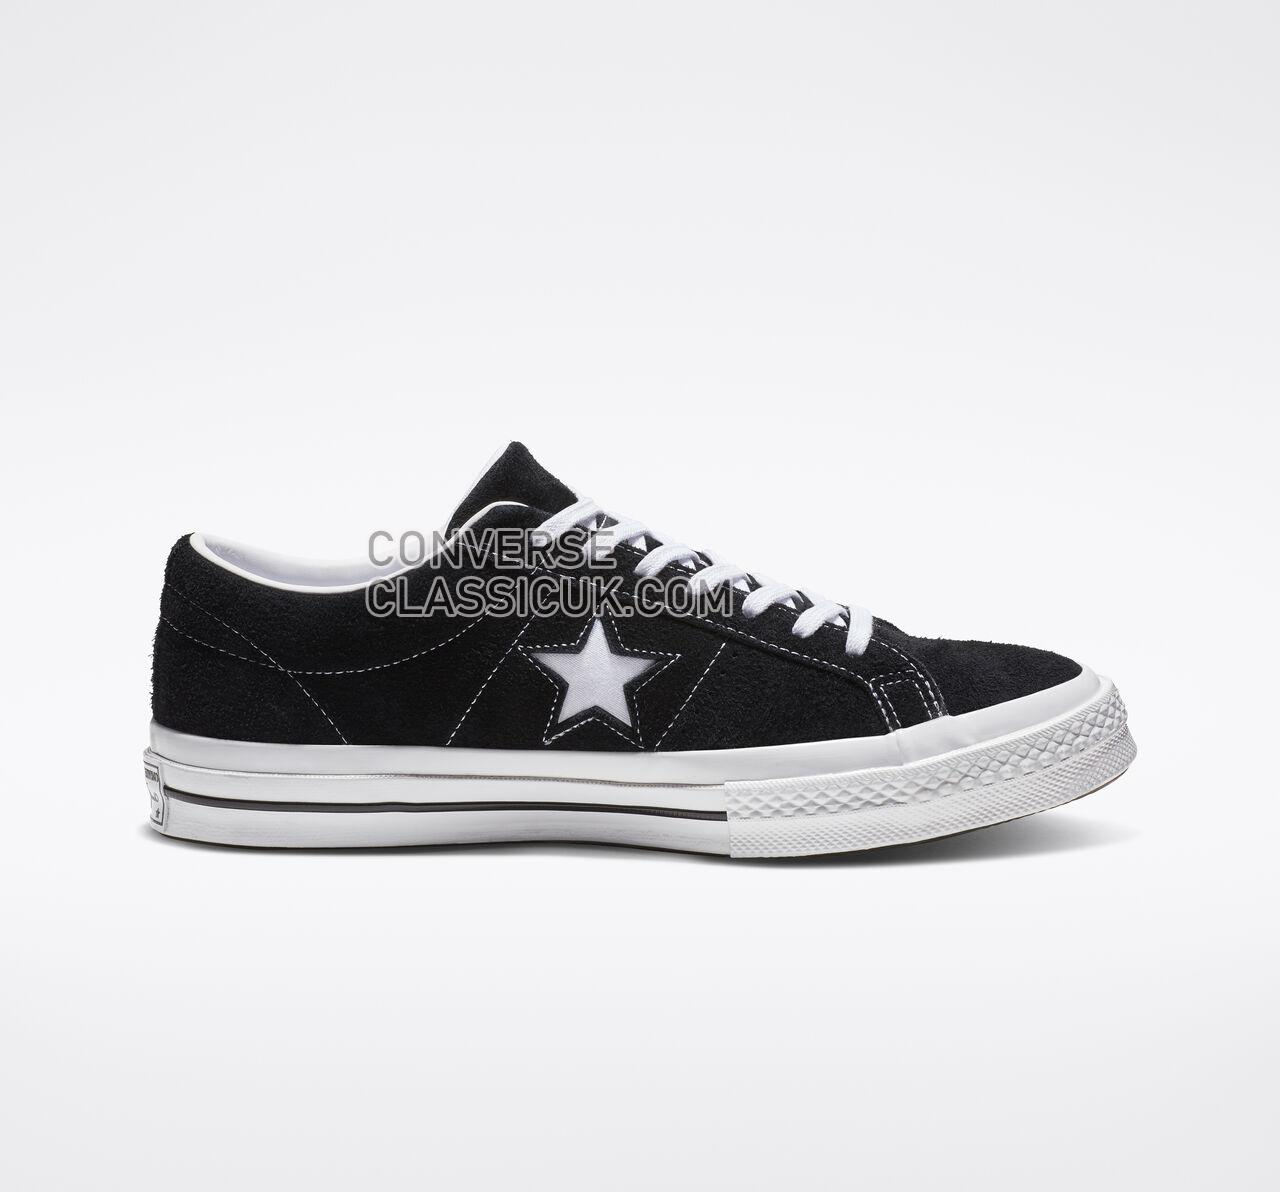 Converse One Star Vintage Suede Low Top Mens Womens Unisex 158369C Black/White/White Shoes